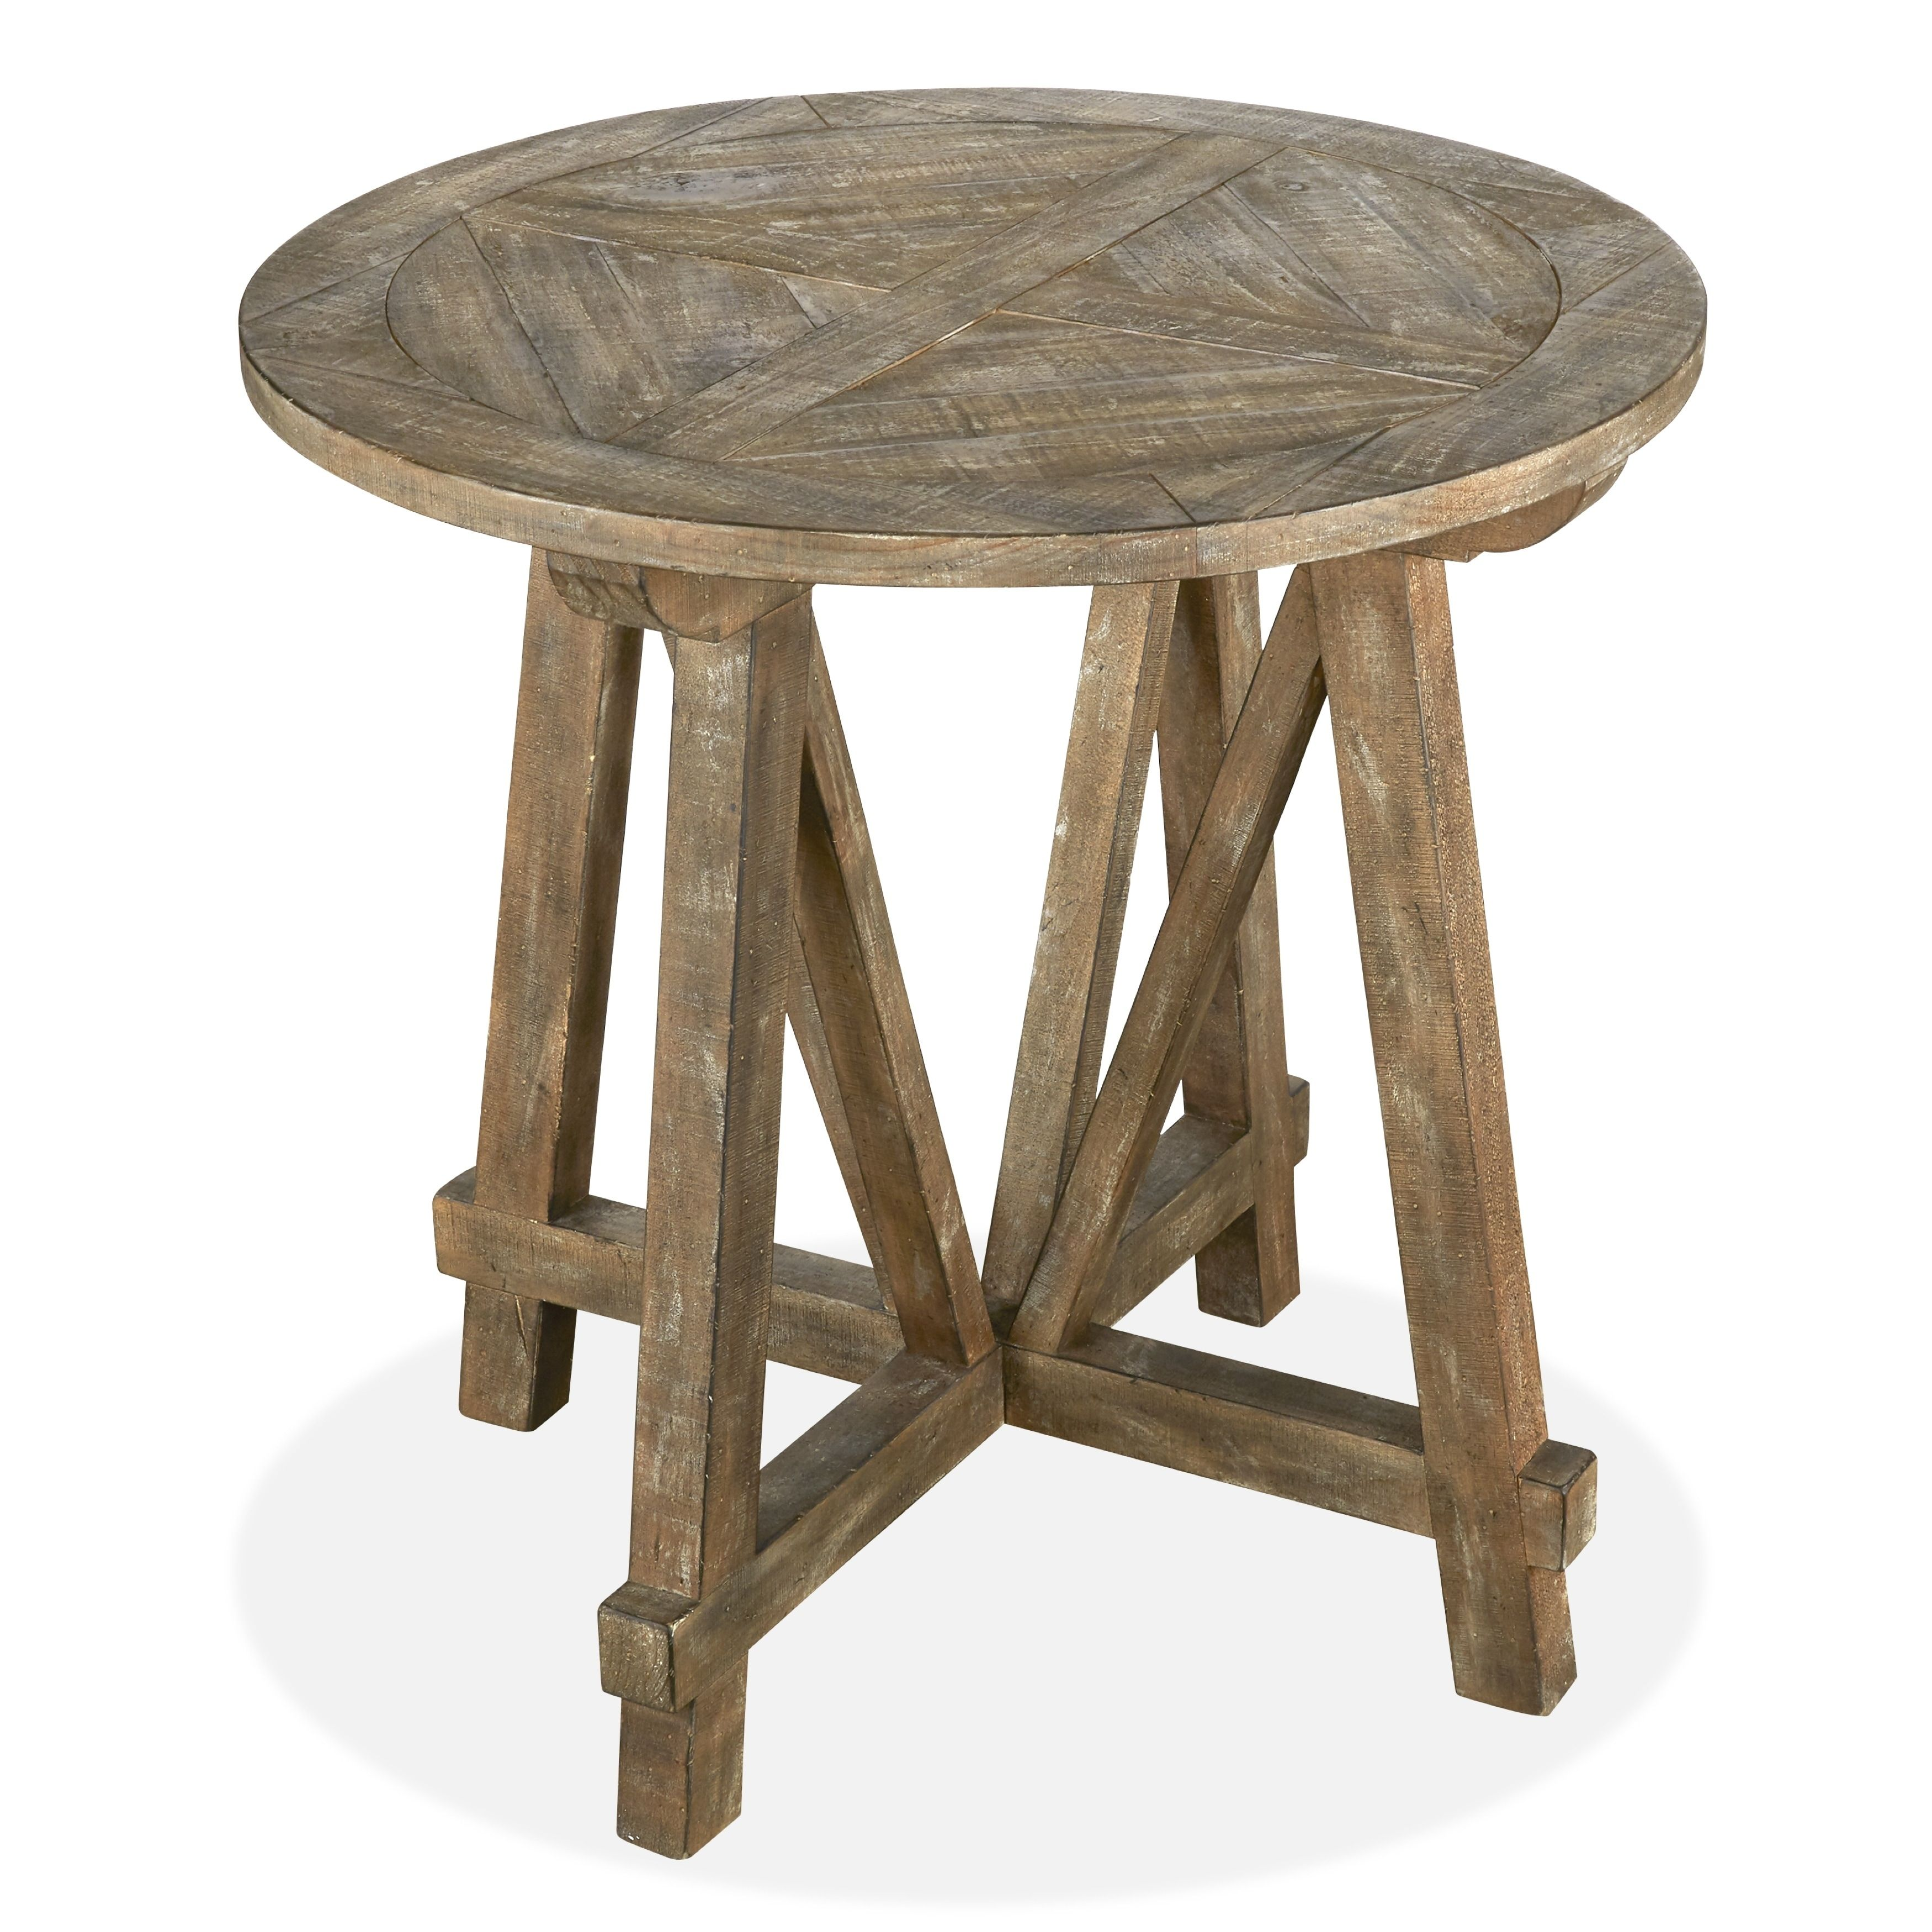 bluff heights rustic weathered nutmeg round accent table tall bistro hairpin leg bar stools living spaces furniture wine rack inch tablecloth navy blue dining room names wall